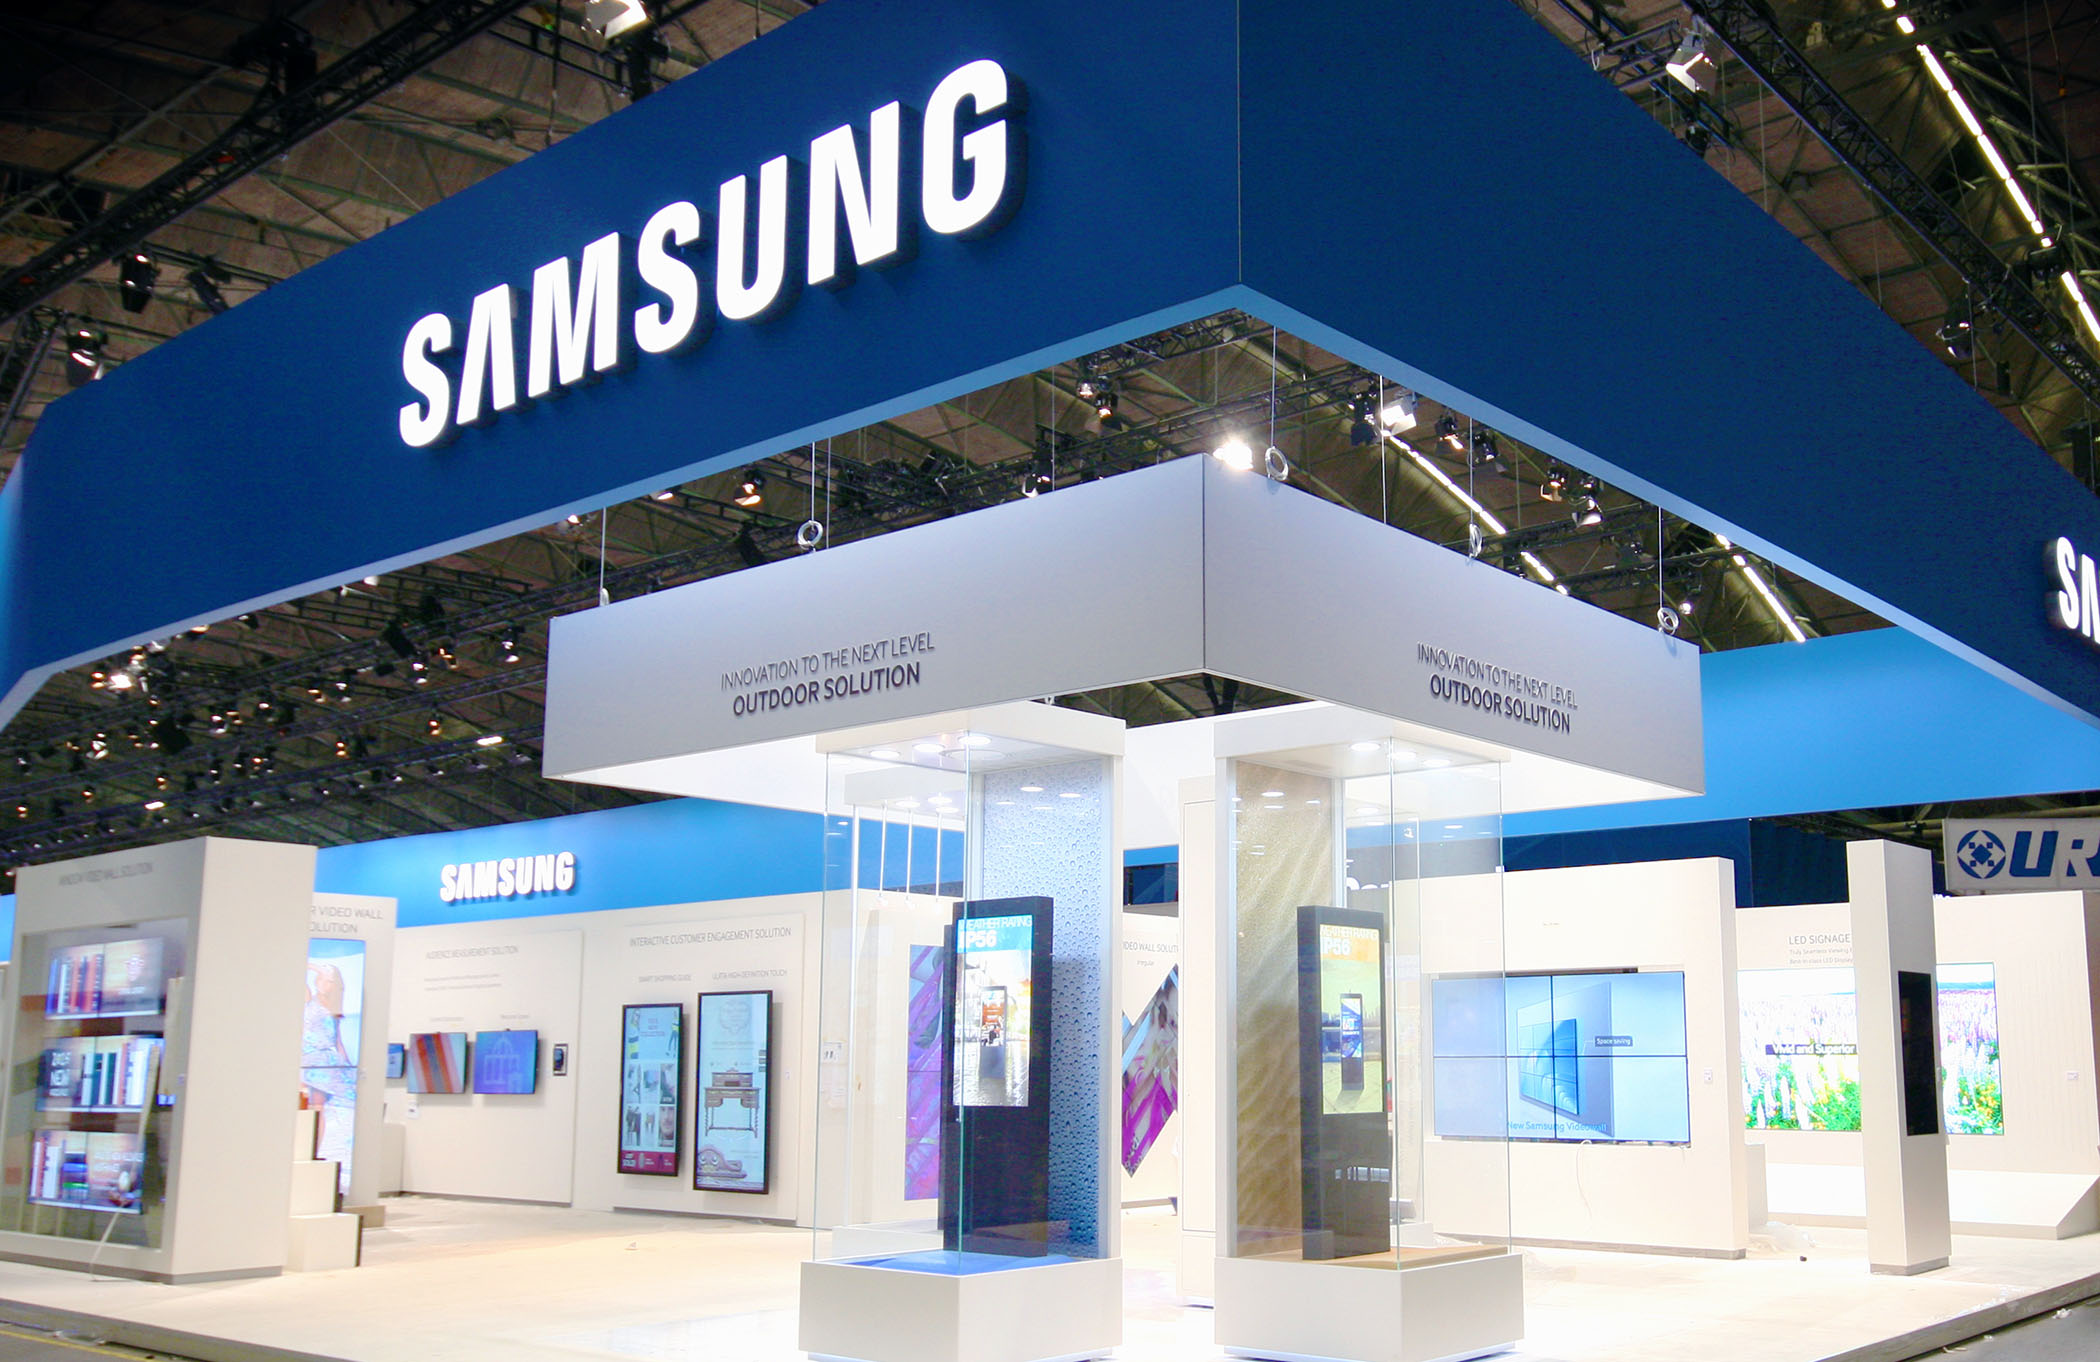 Samsung has the largest booth at ISE 2015.